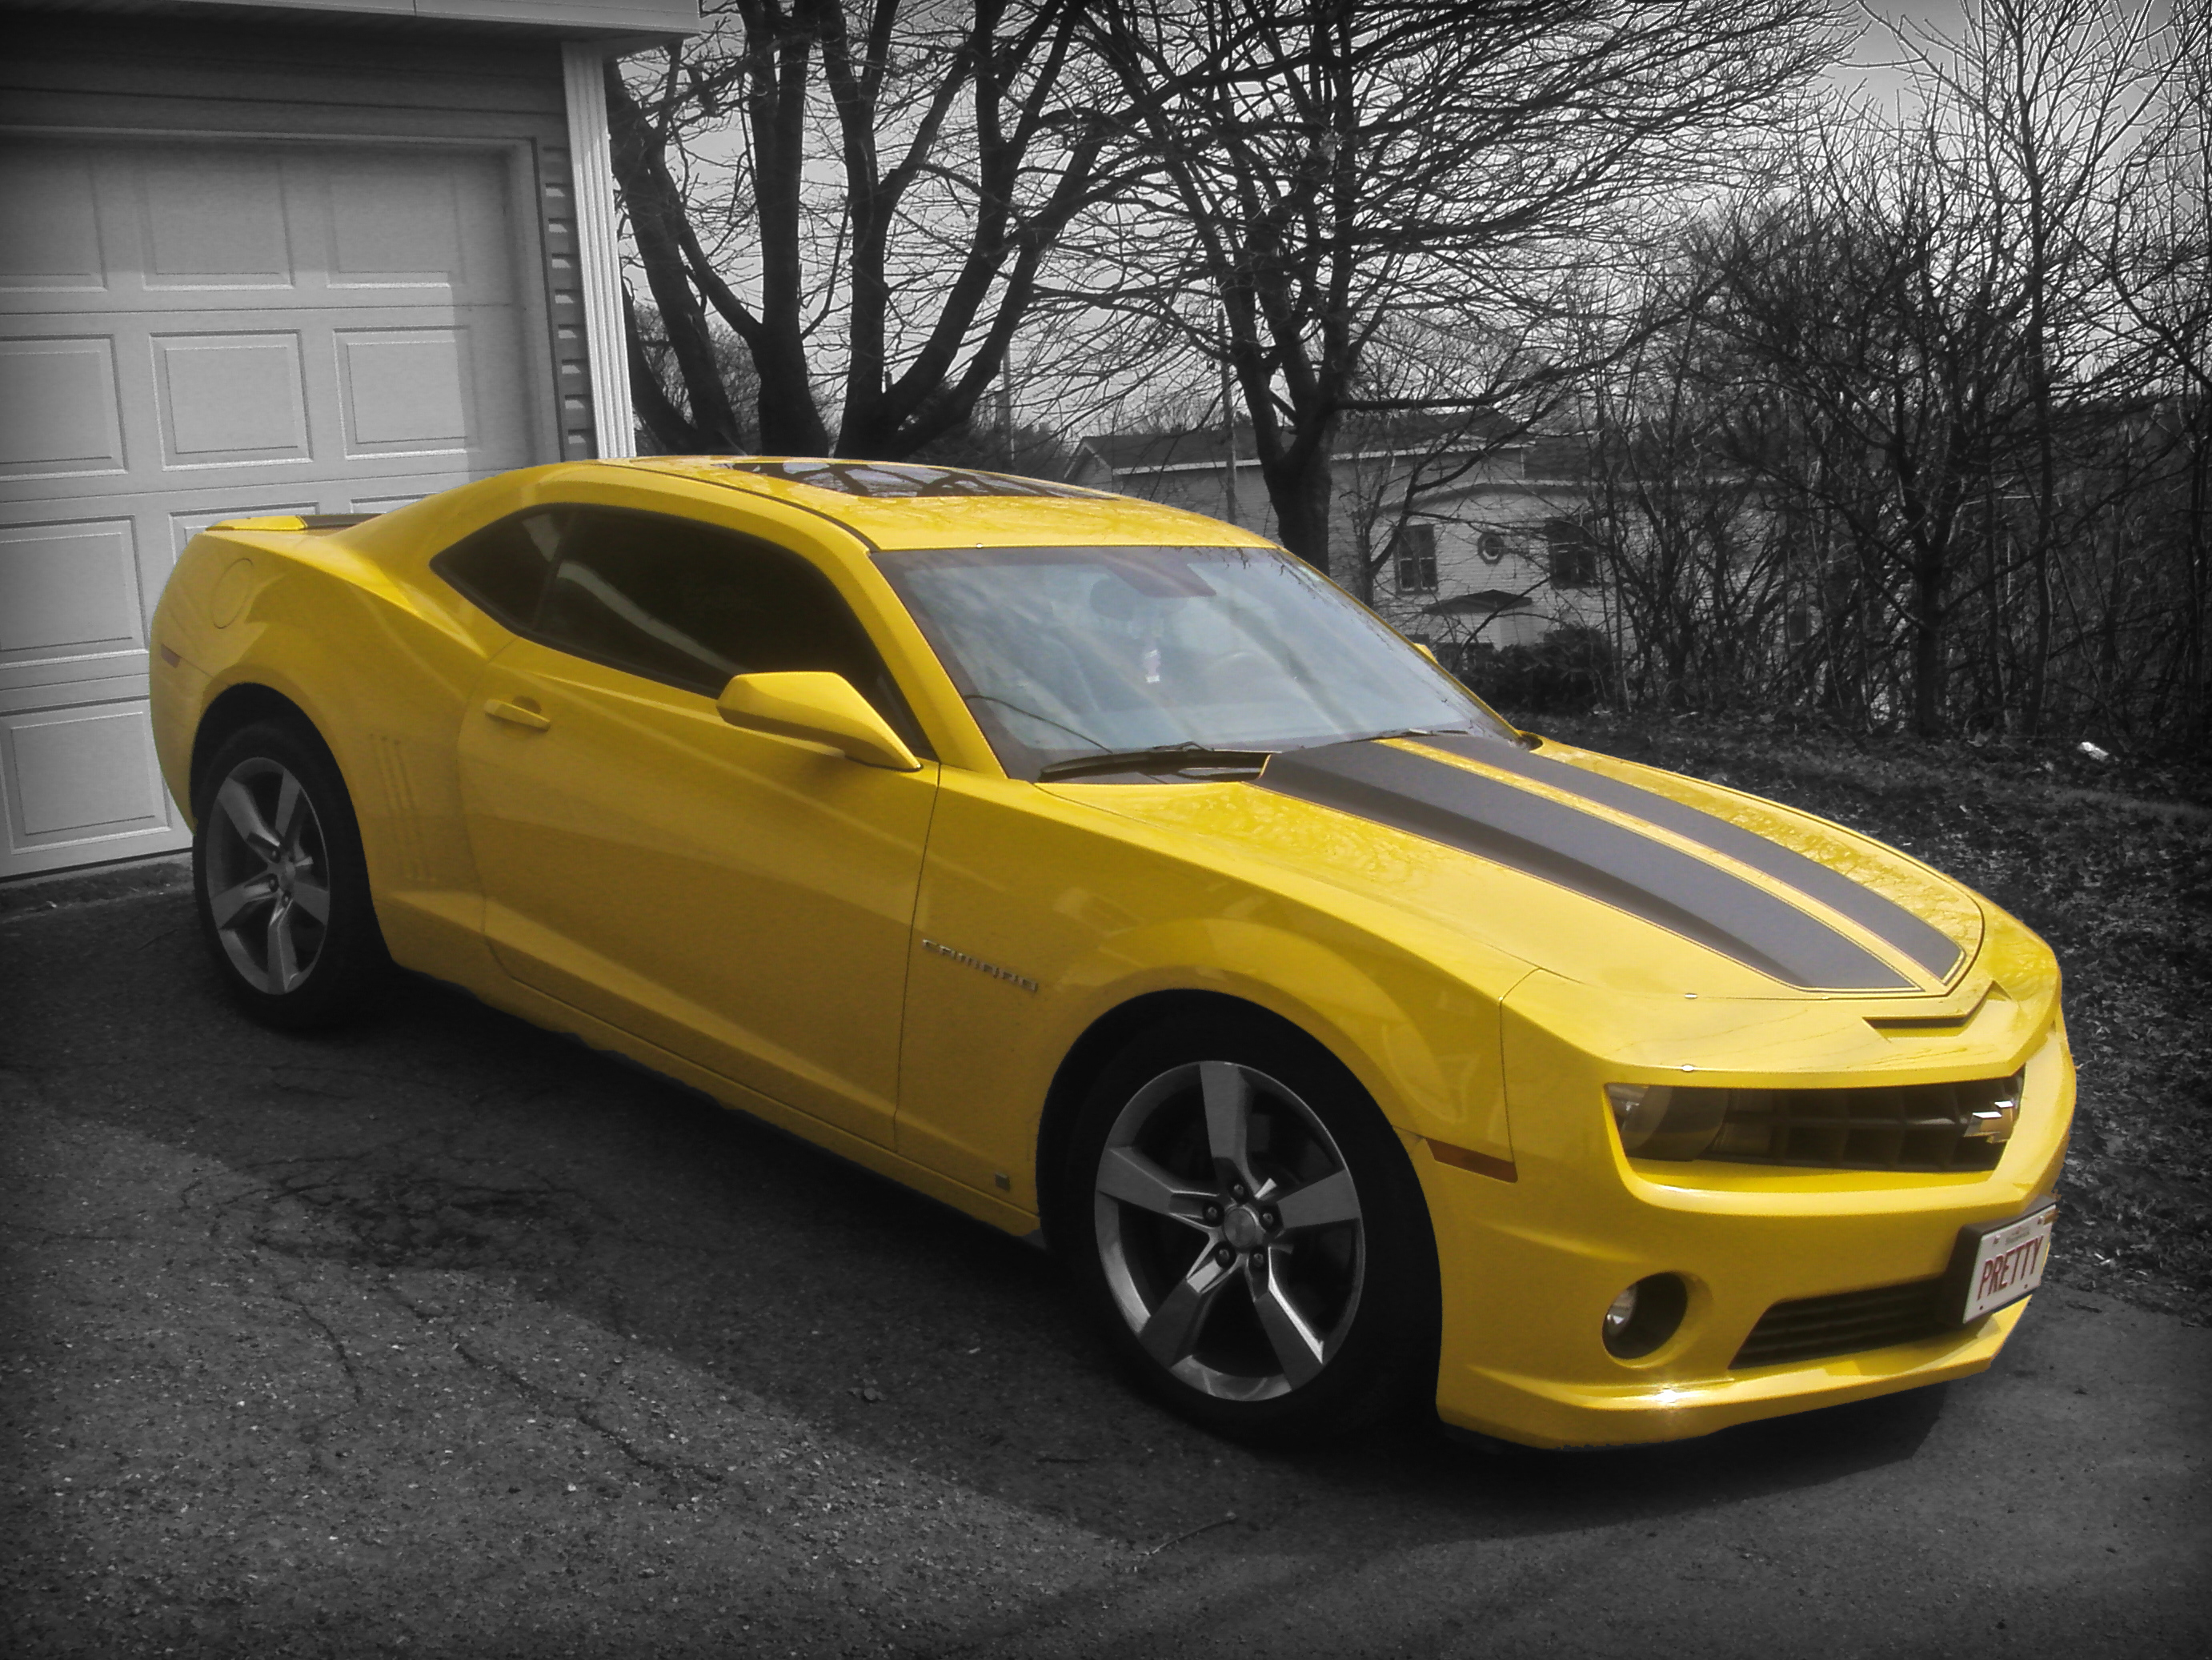 File:2010-Chevrolet-Camaro-SS.jpg - Wikimedia Commons